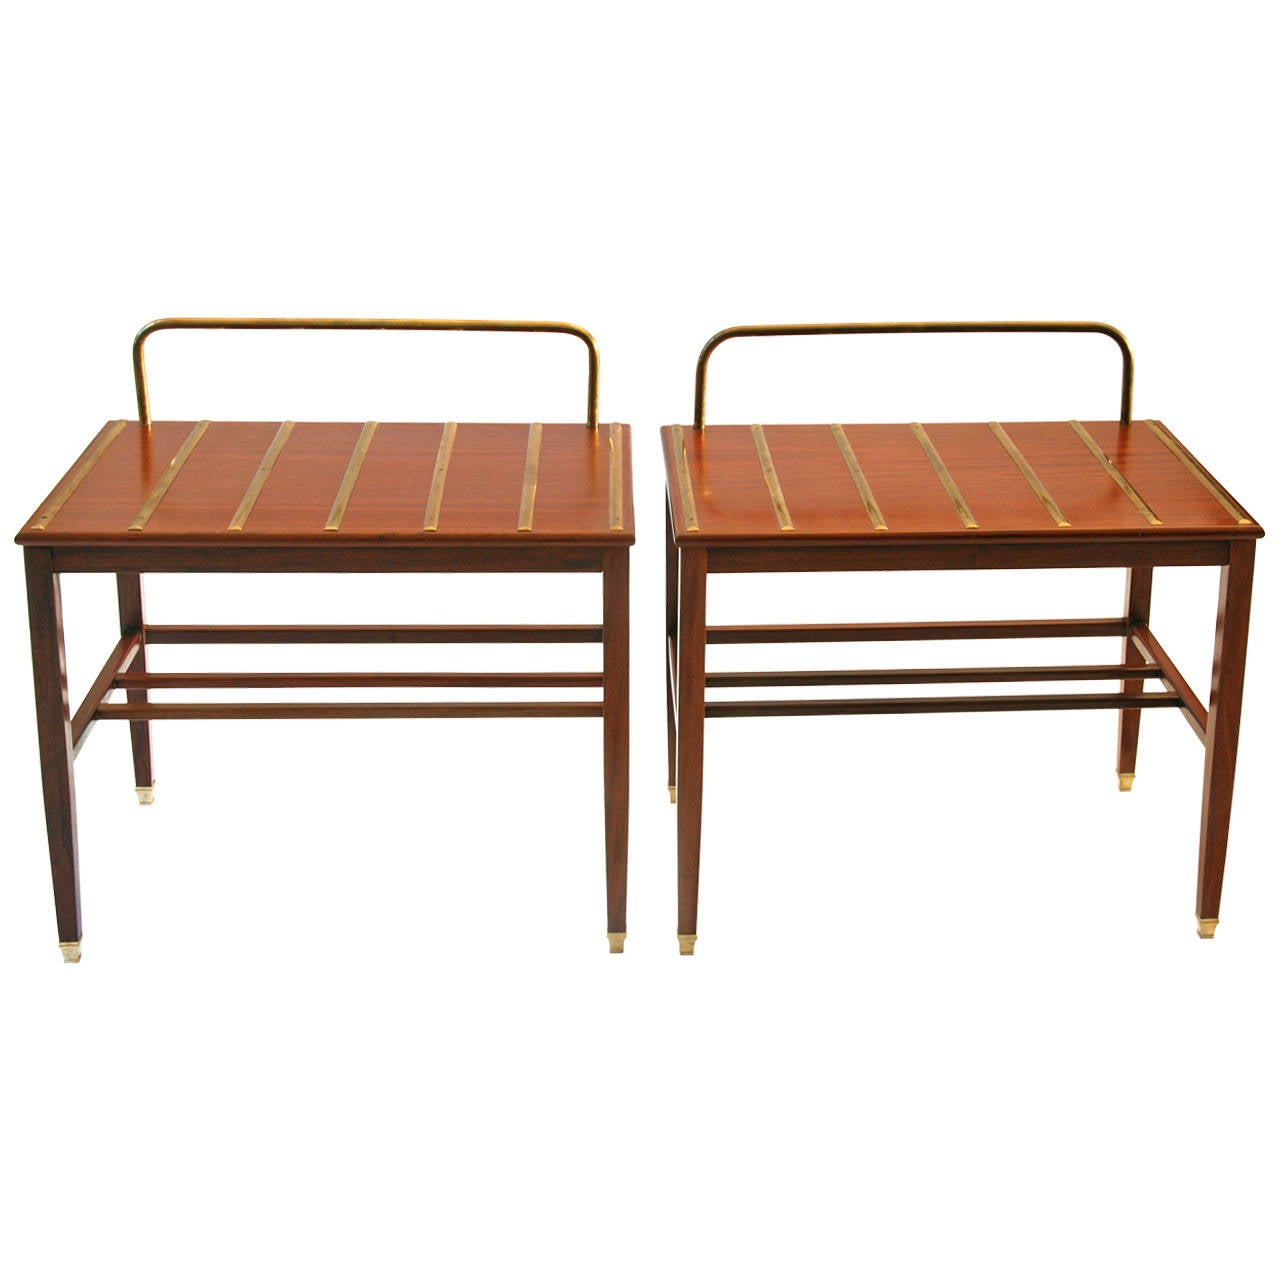 Pair of gio ponti side tables by hotel royal naples 1955 for Table 52 naples